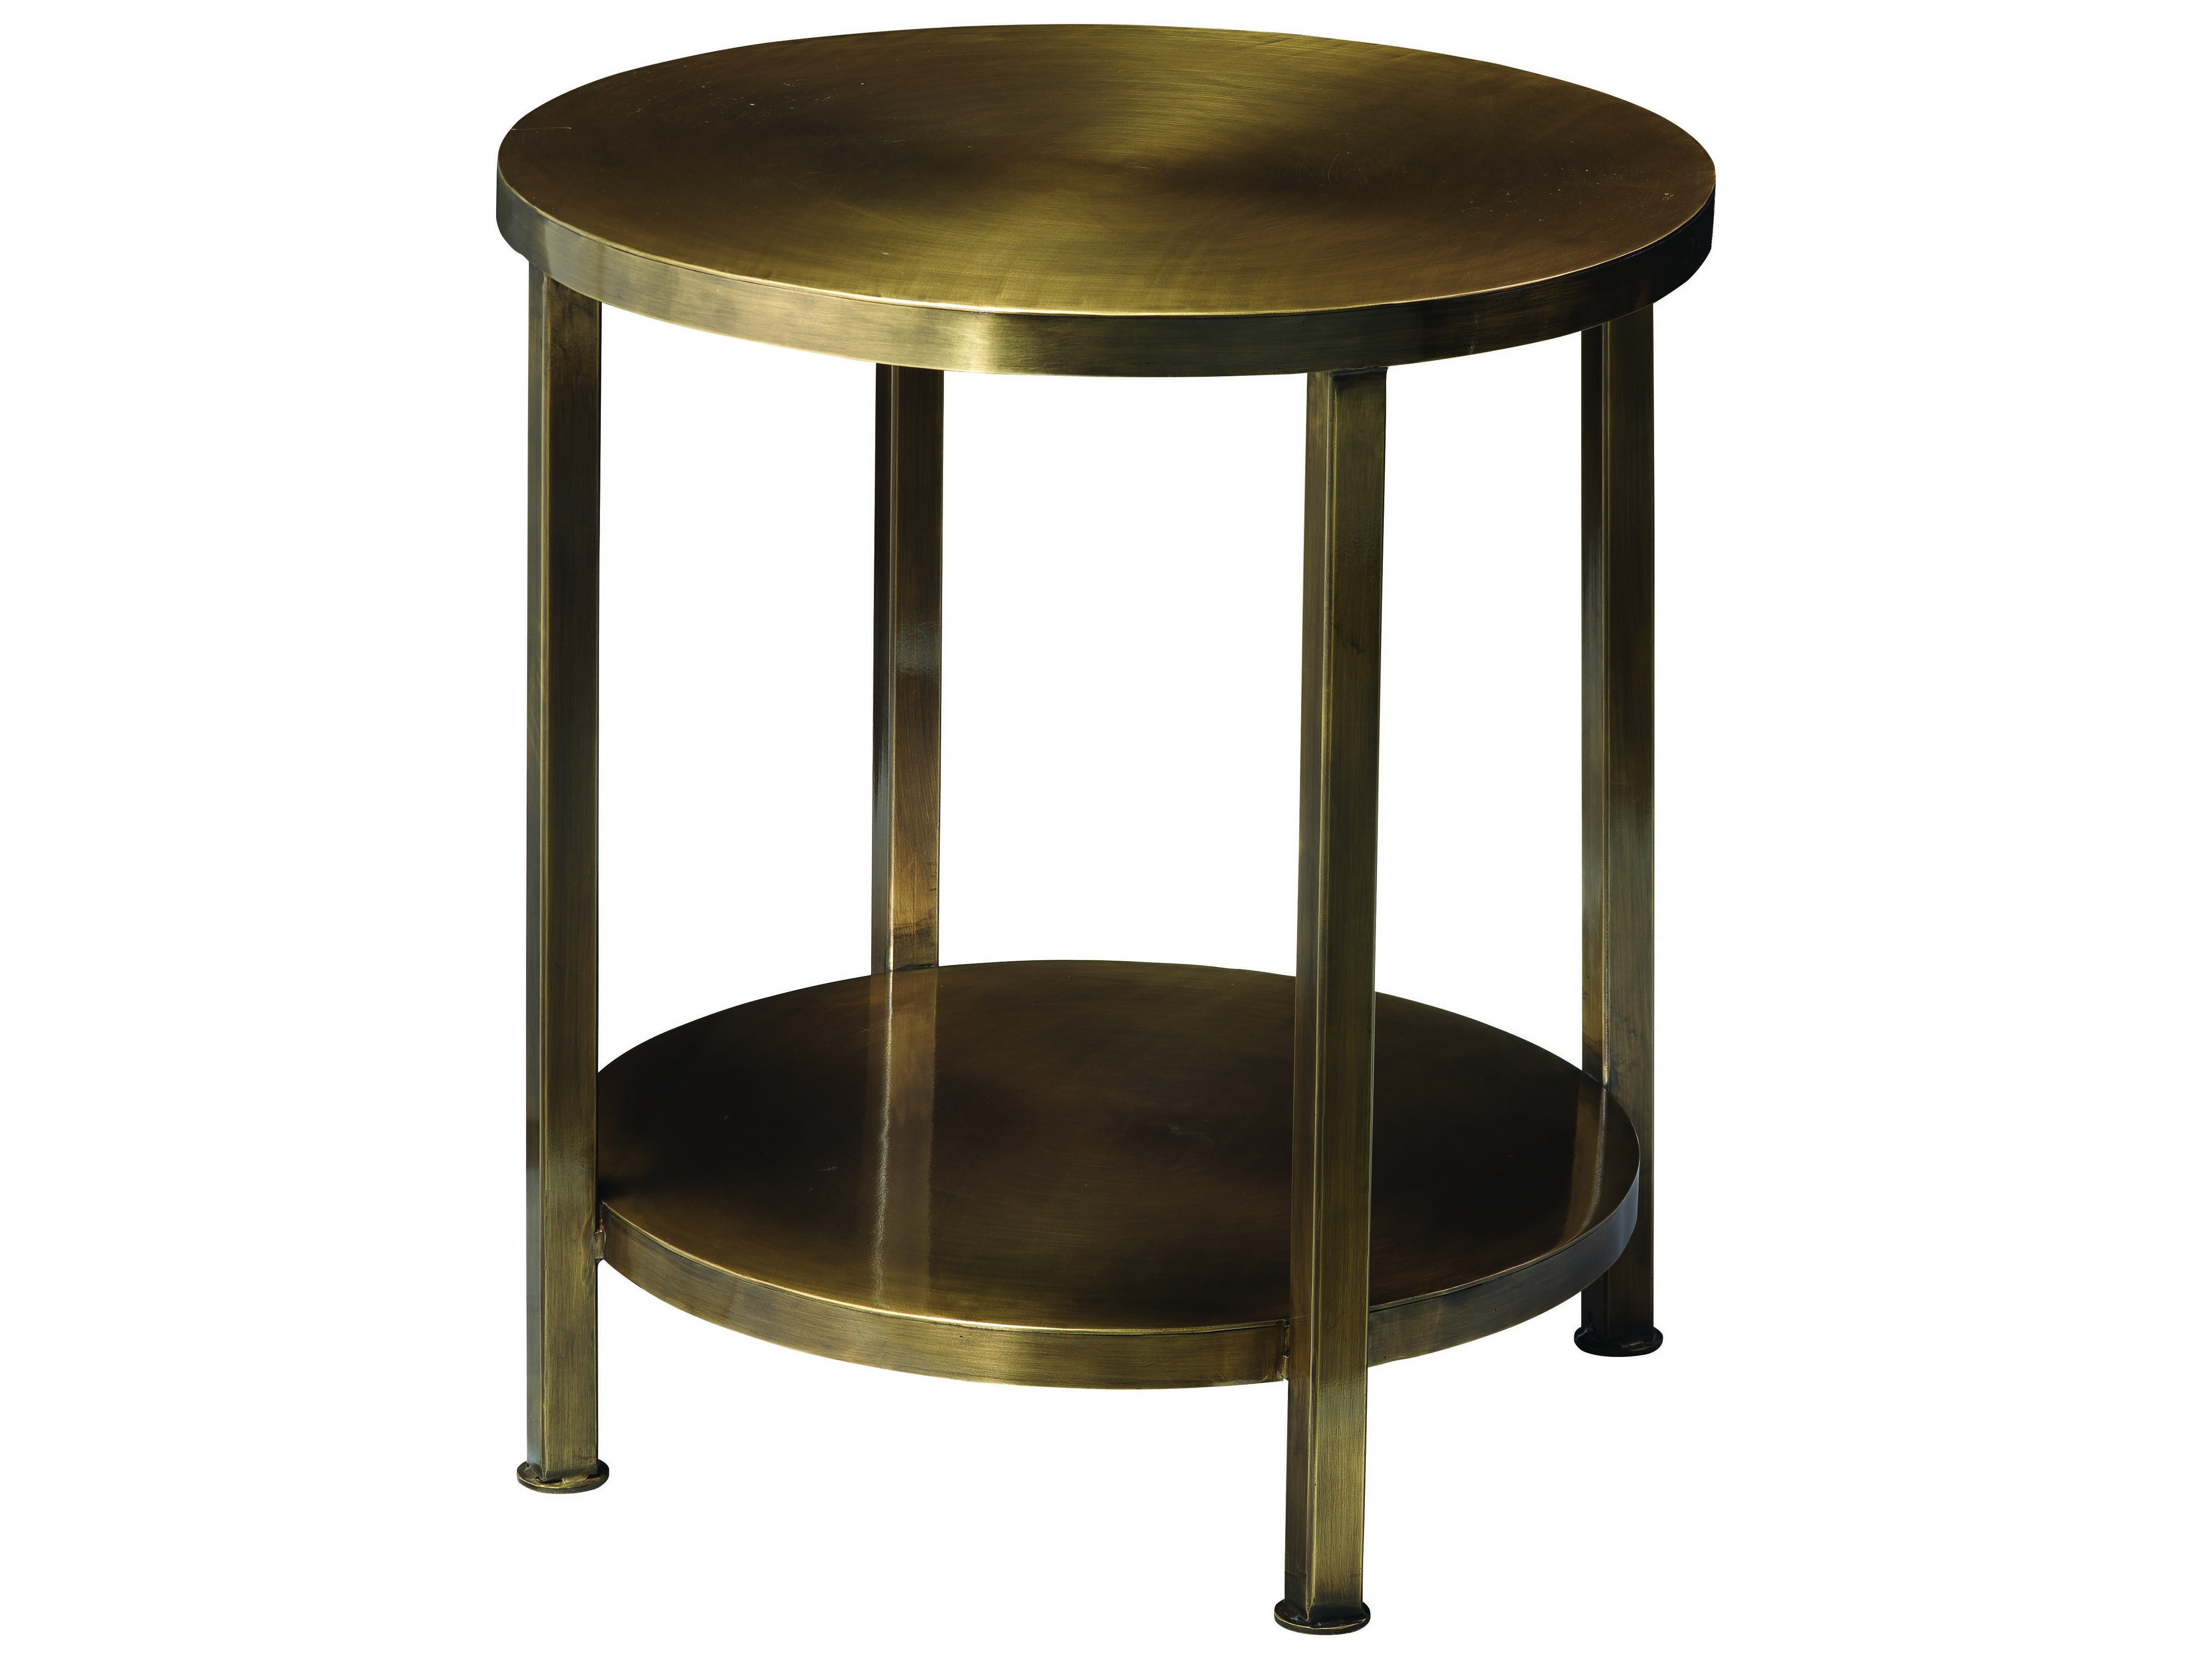 jamie young company alloy 20 39 39 round antique brass side. Black Bedroom Furniture Sets. Home Design Ideas